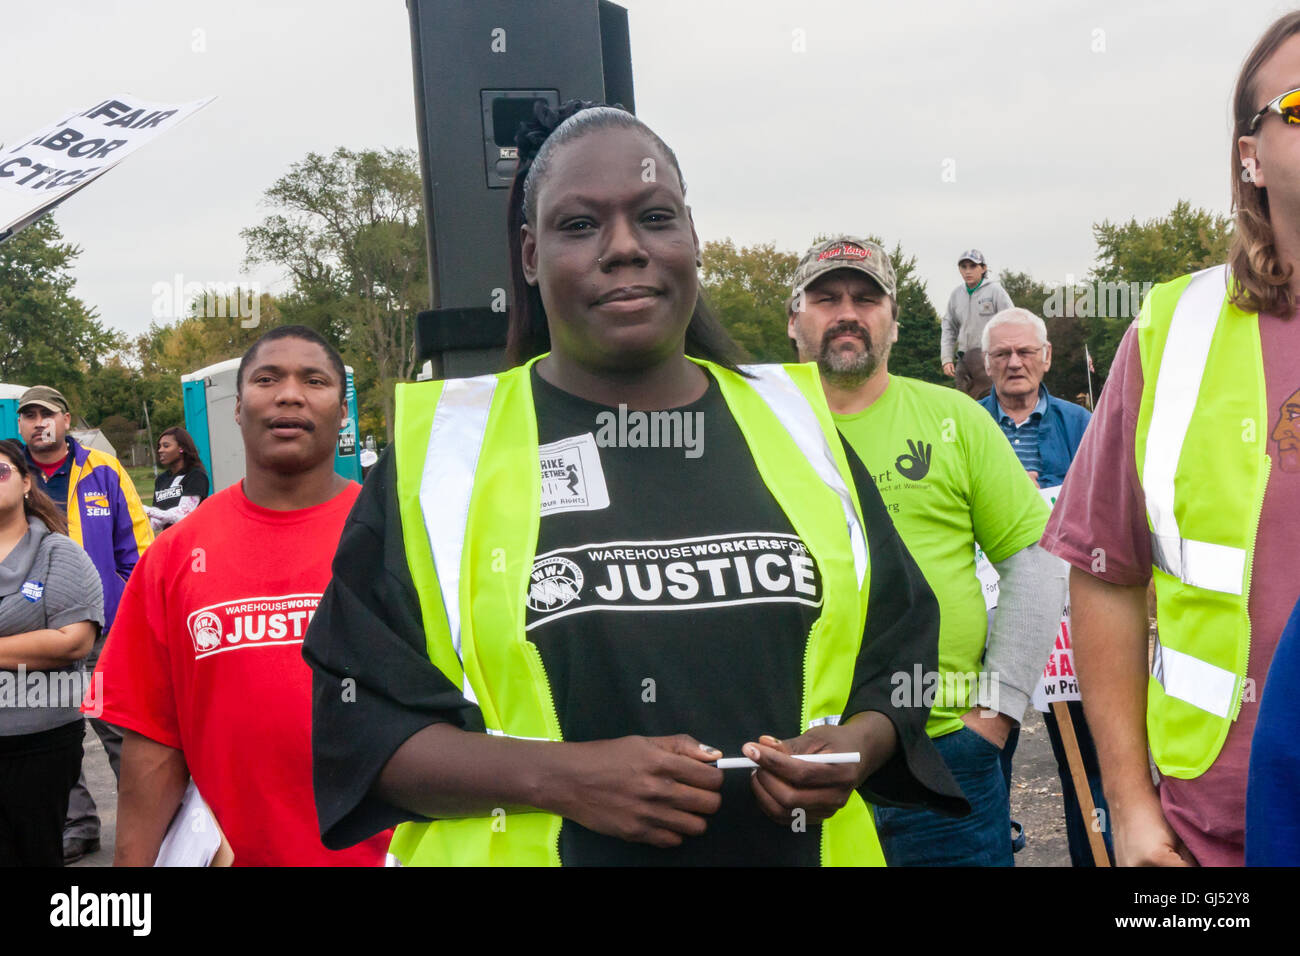 Elwood, Illinois - Oct. 1, 2012: Striking workers and supporters from the Walmart distribution center rally for - Stock Image